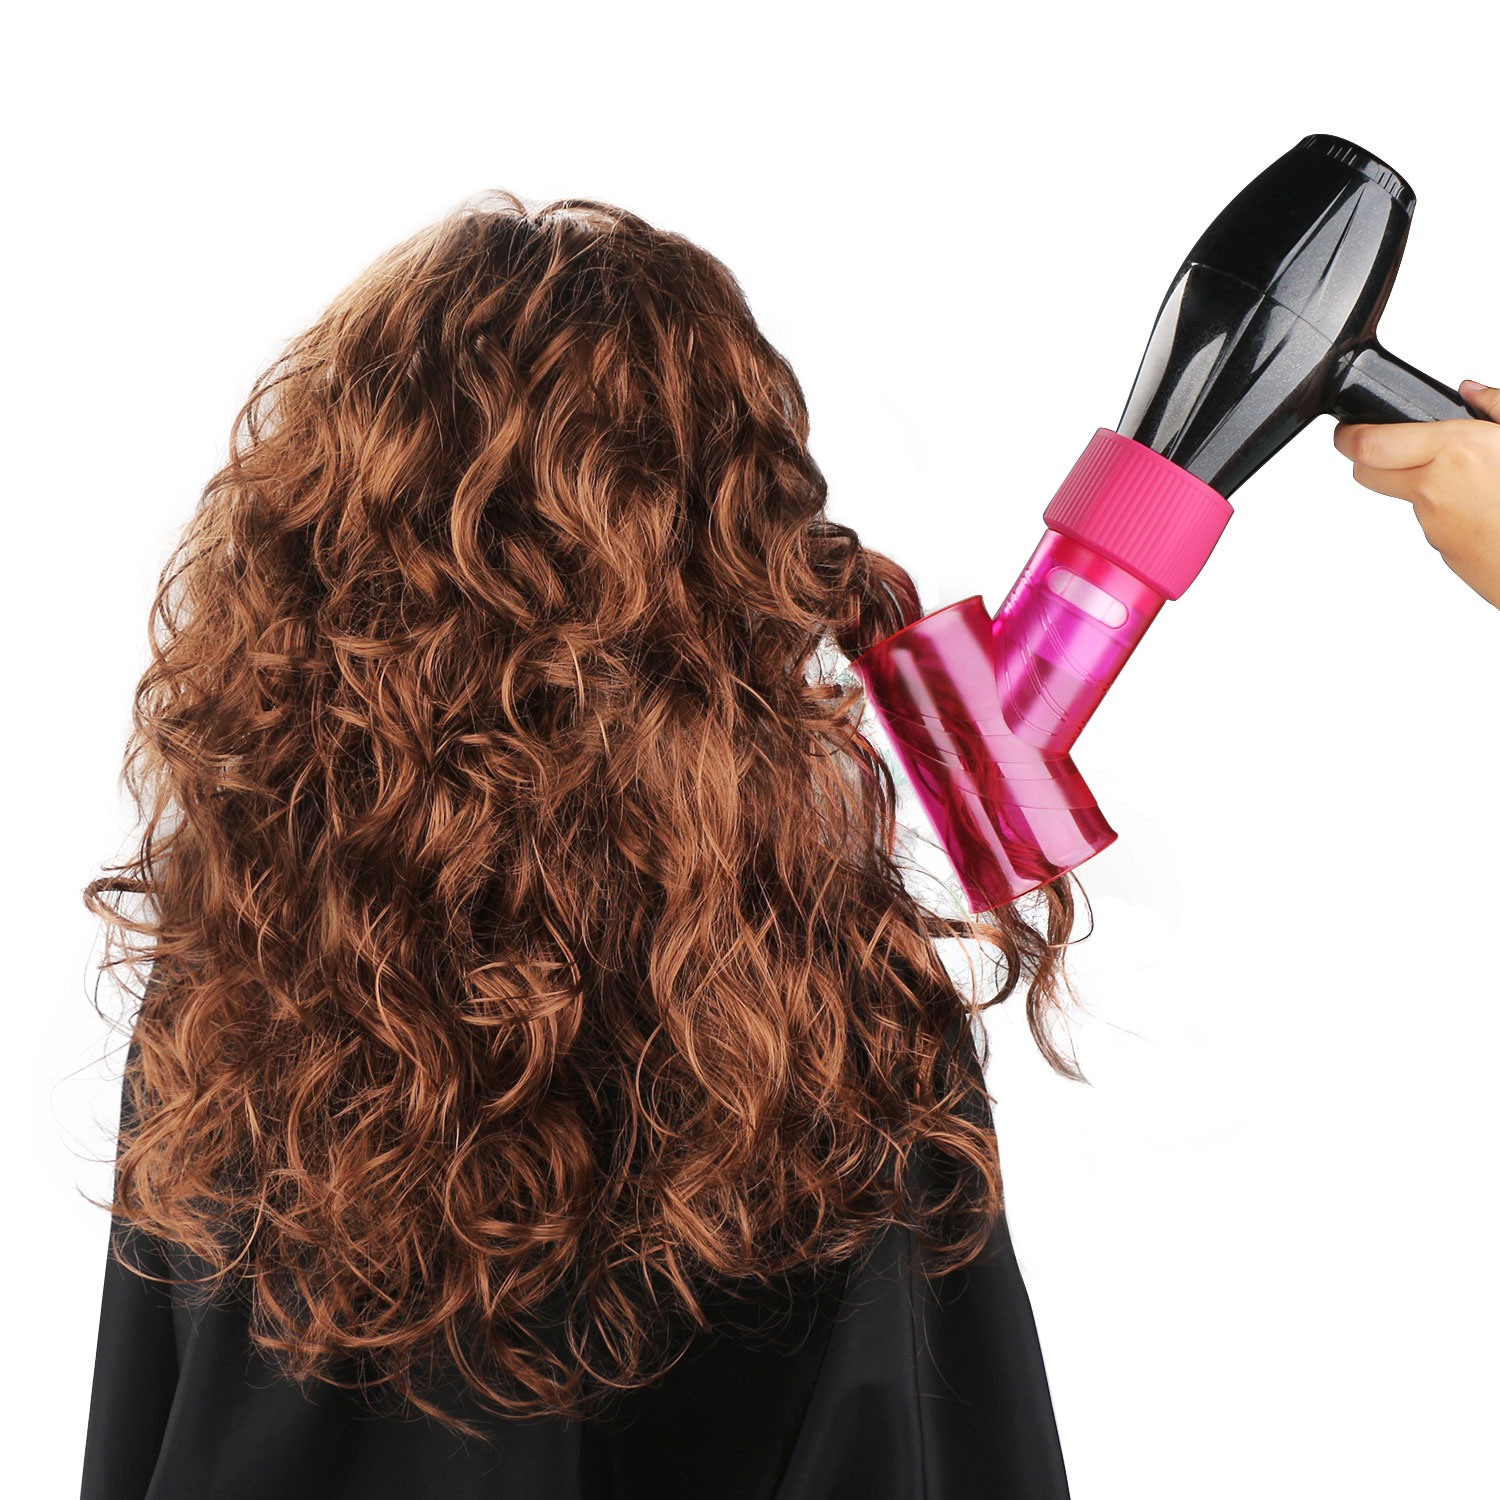 Segbeauty Wind Spin Hair Dryer Diffuser For Curly Wavy